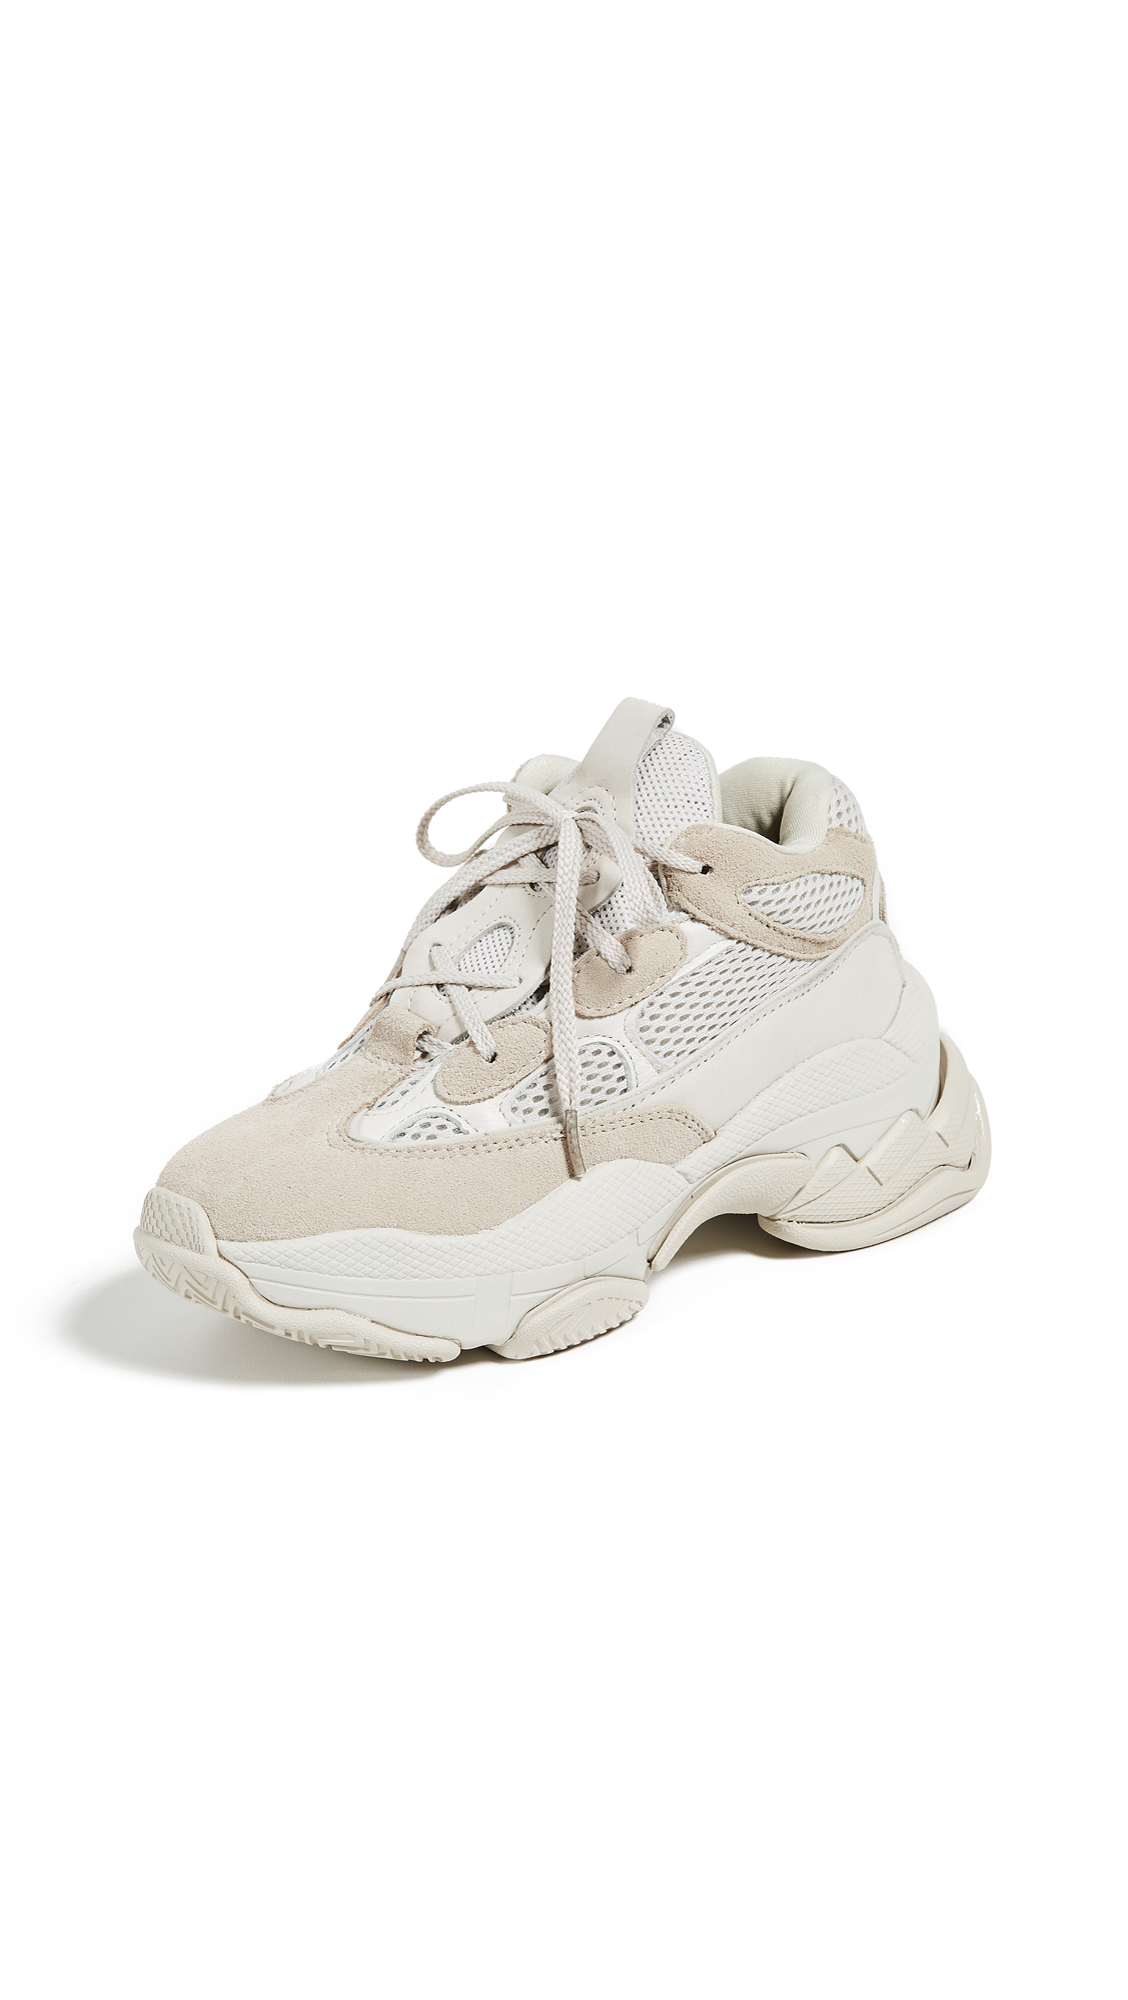 Jeffrey Campbell Hotline Dad Sneakers - Off White